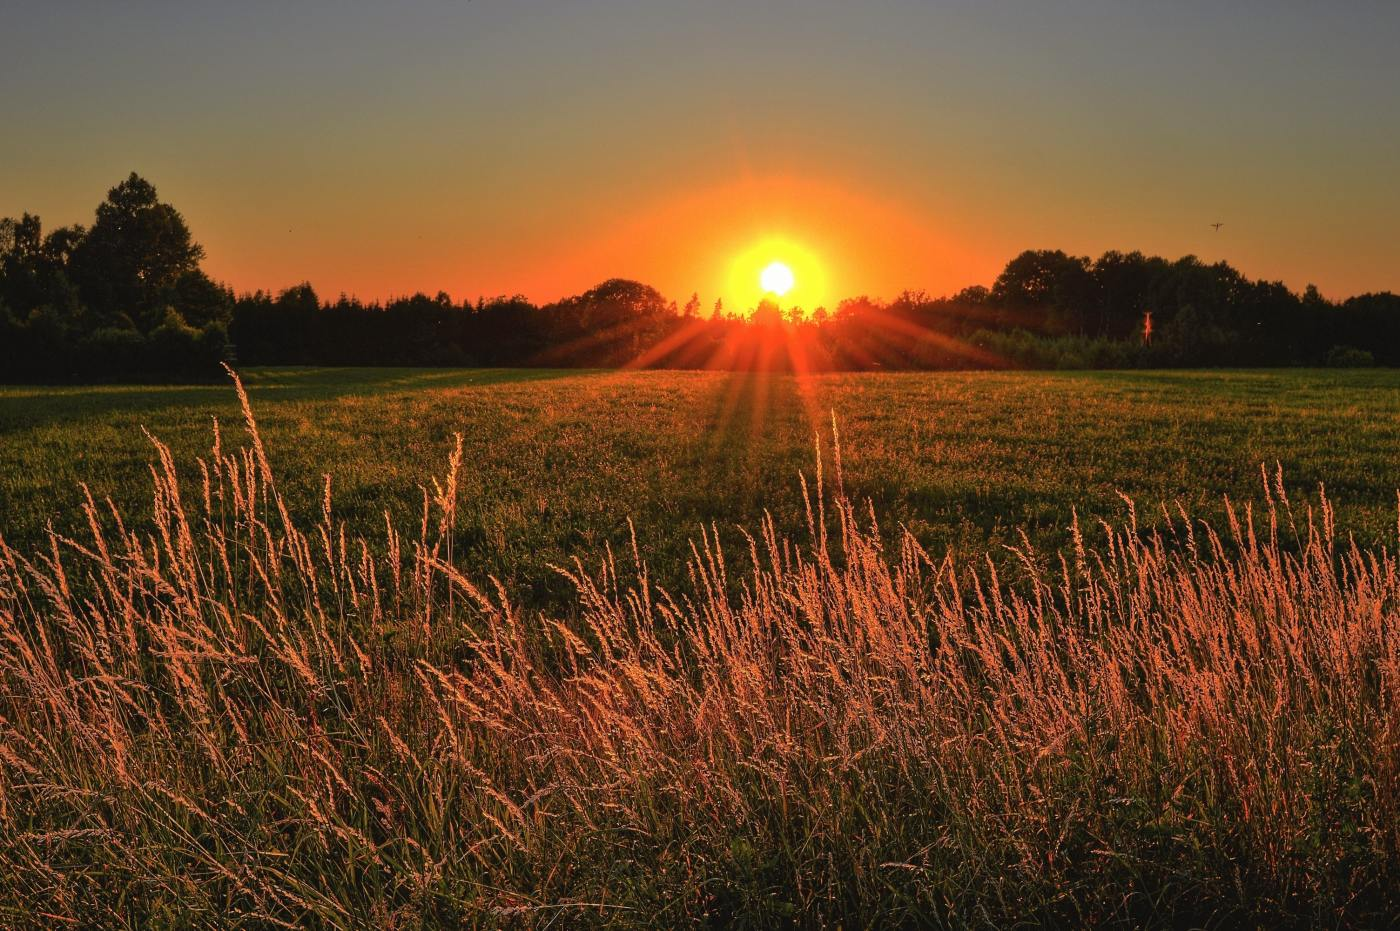 Sun rising over a field of grass wheat.